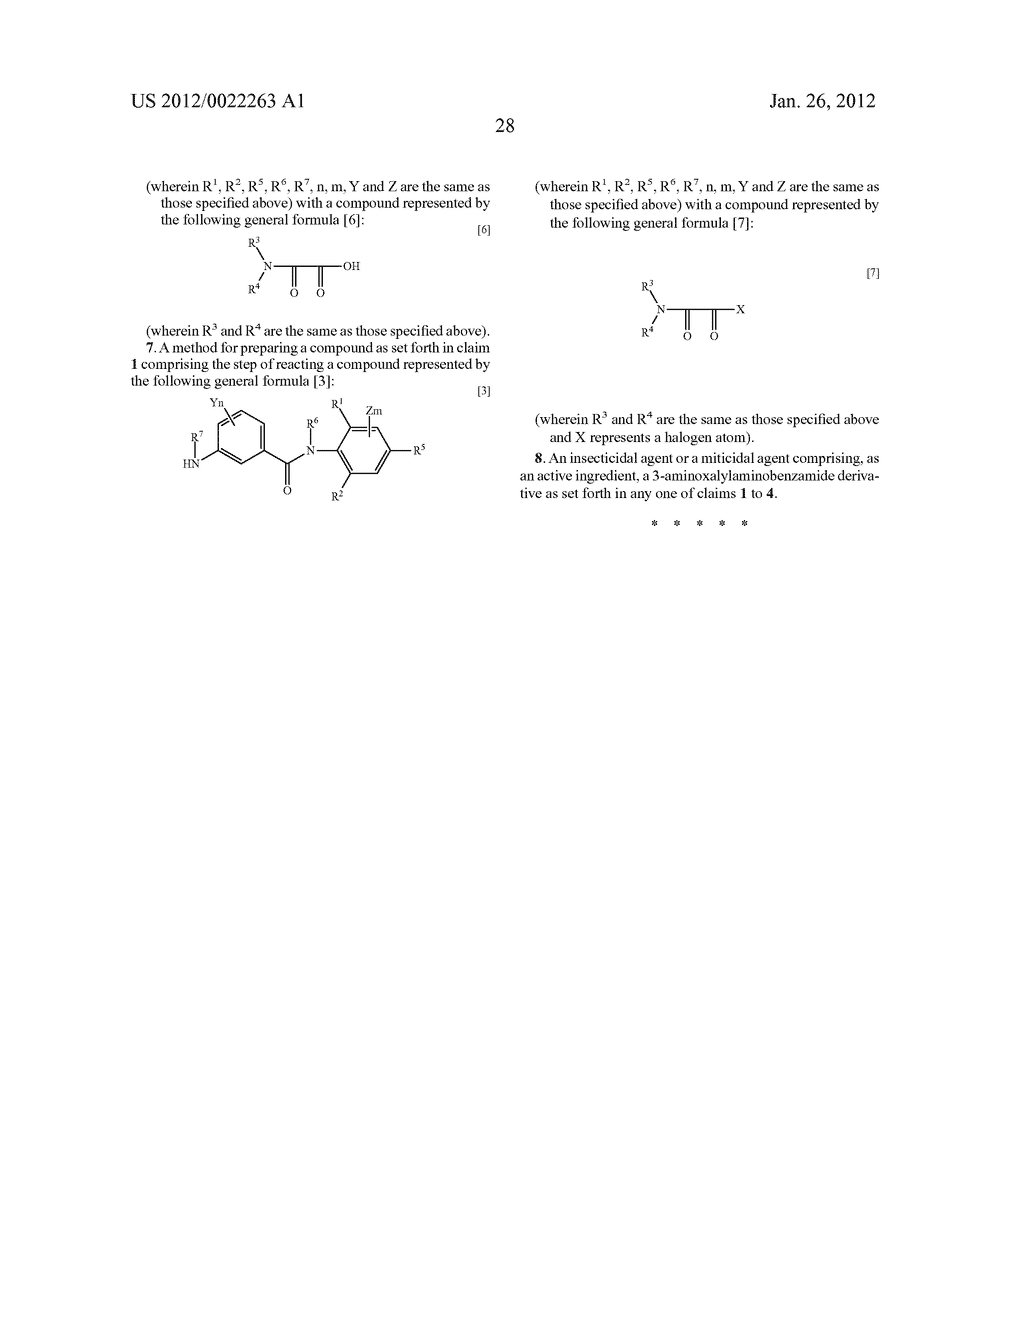 3-AMINOXALYL-AMINOBENZAMIDE DERIVATIVES AND INSECTICIDAL AND MITICIDAL     AGENTS CONTAINING SAME AS ACTIVE INGREDIENT - diagram, schematic, and image 29